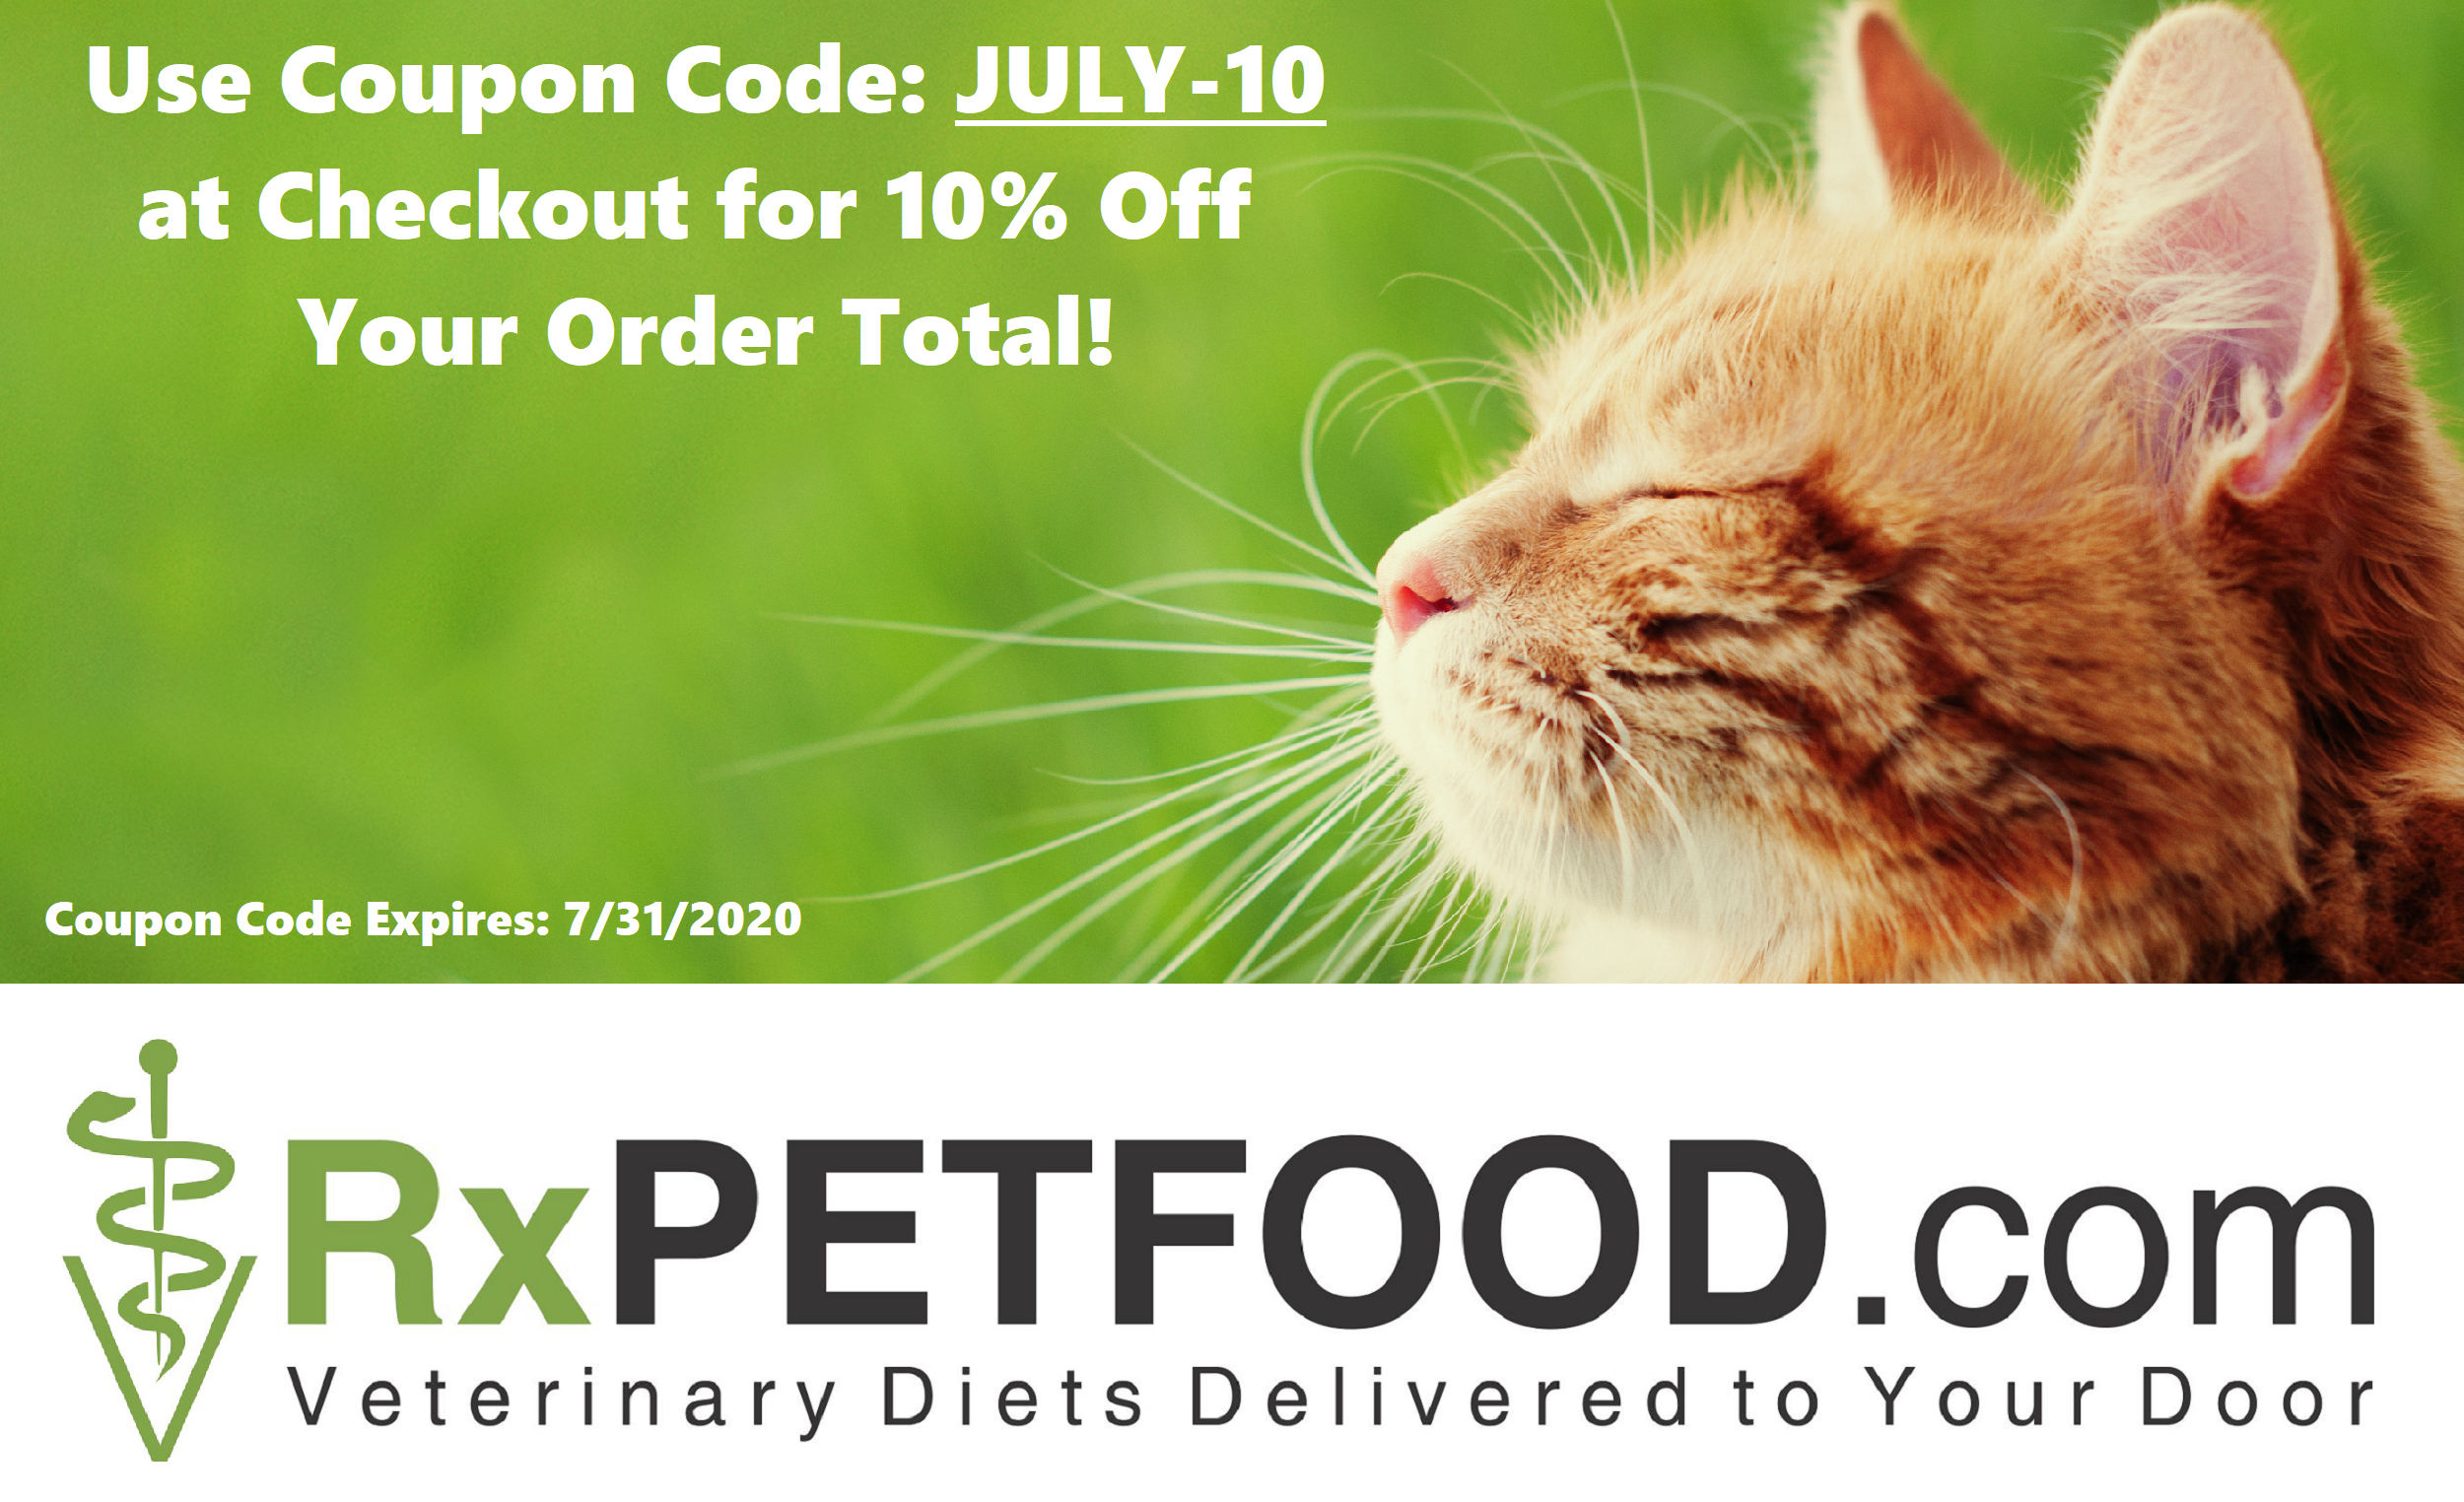 rxpetfood-july-promo-image-with-logo.png